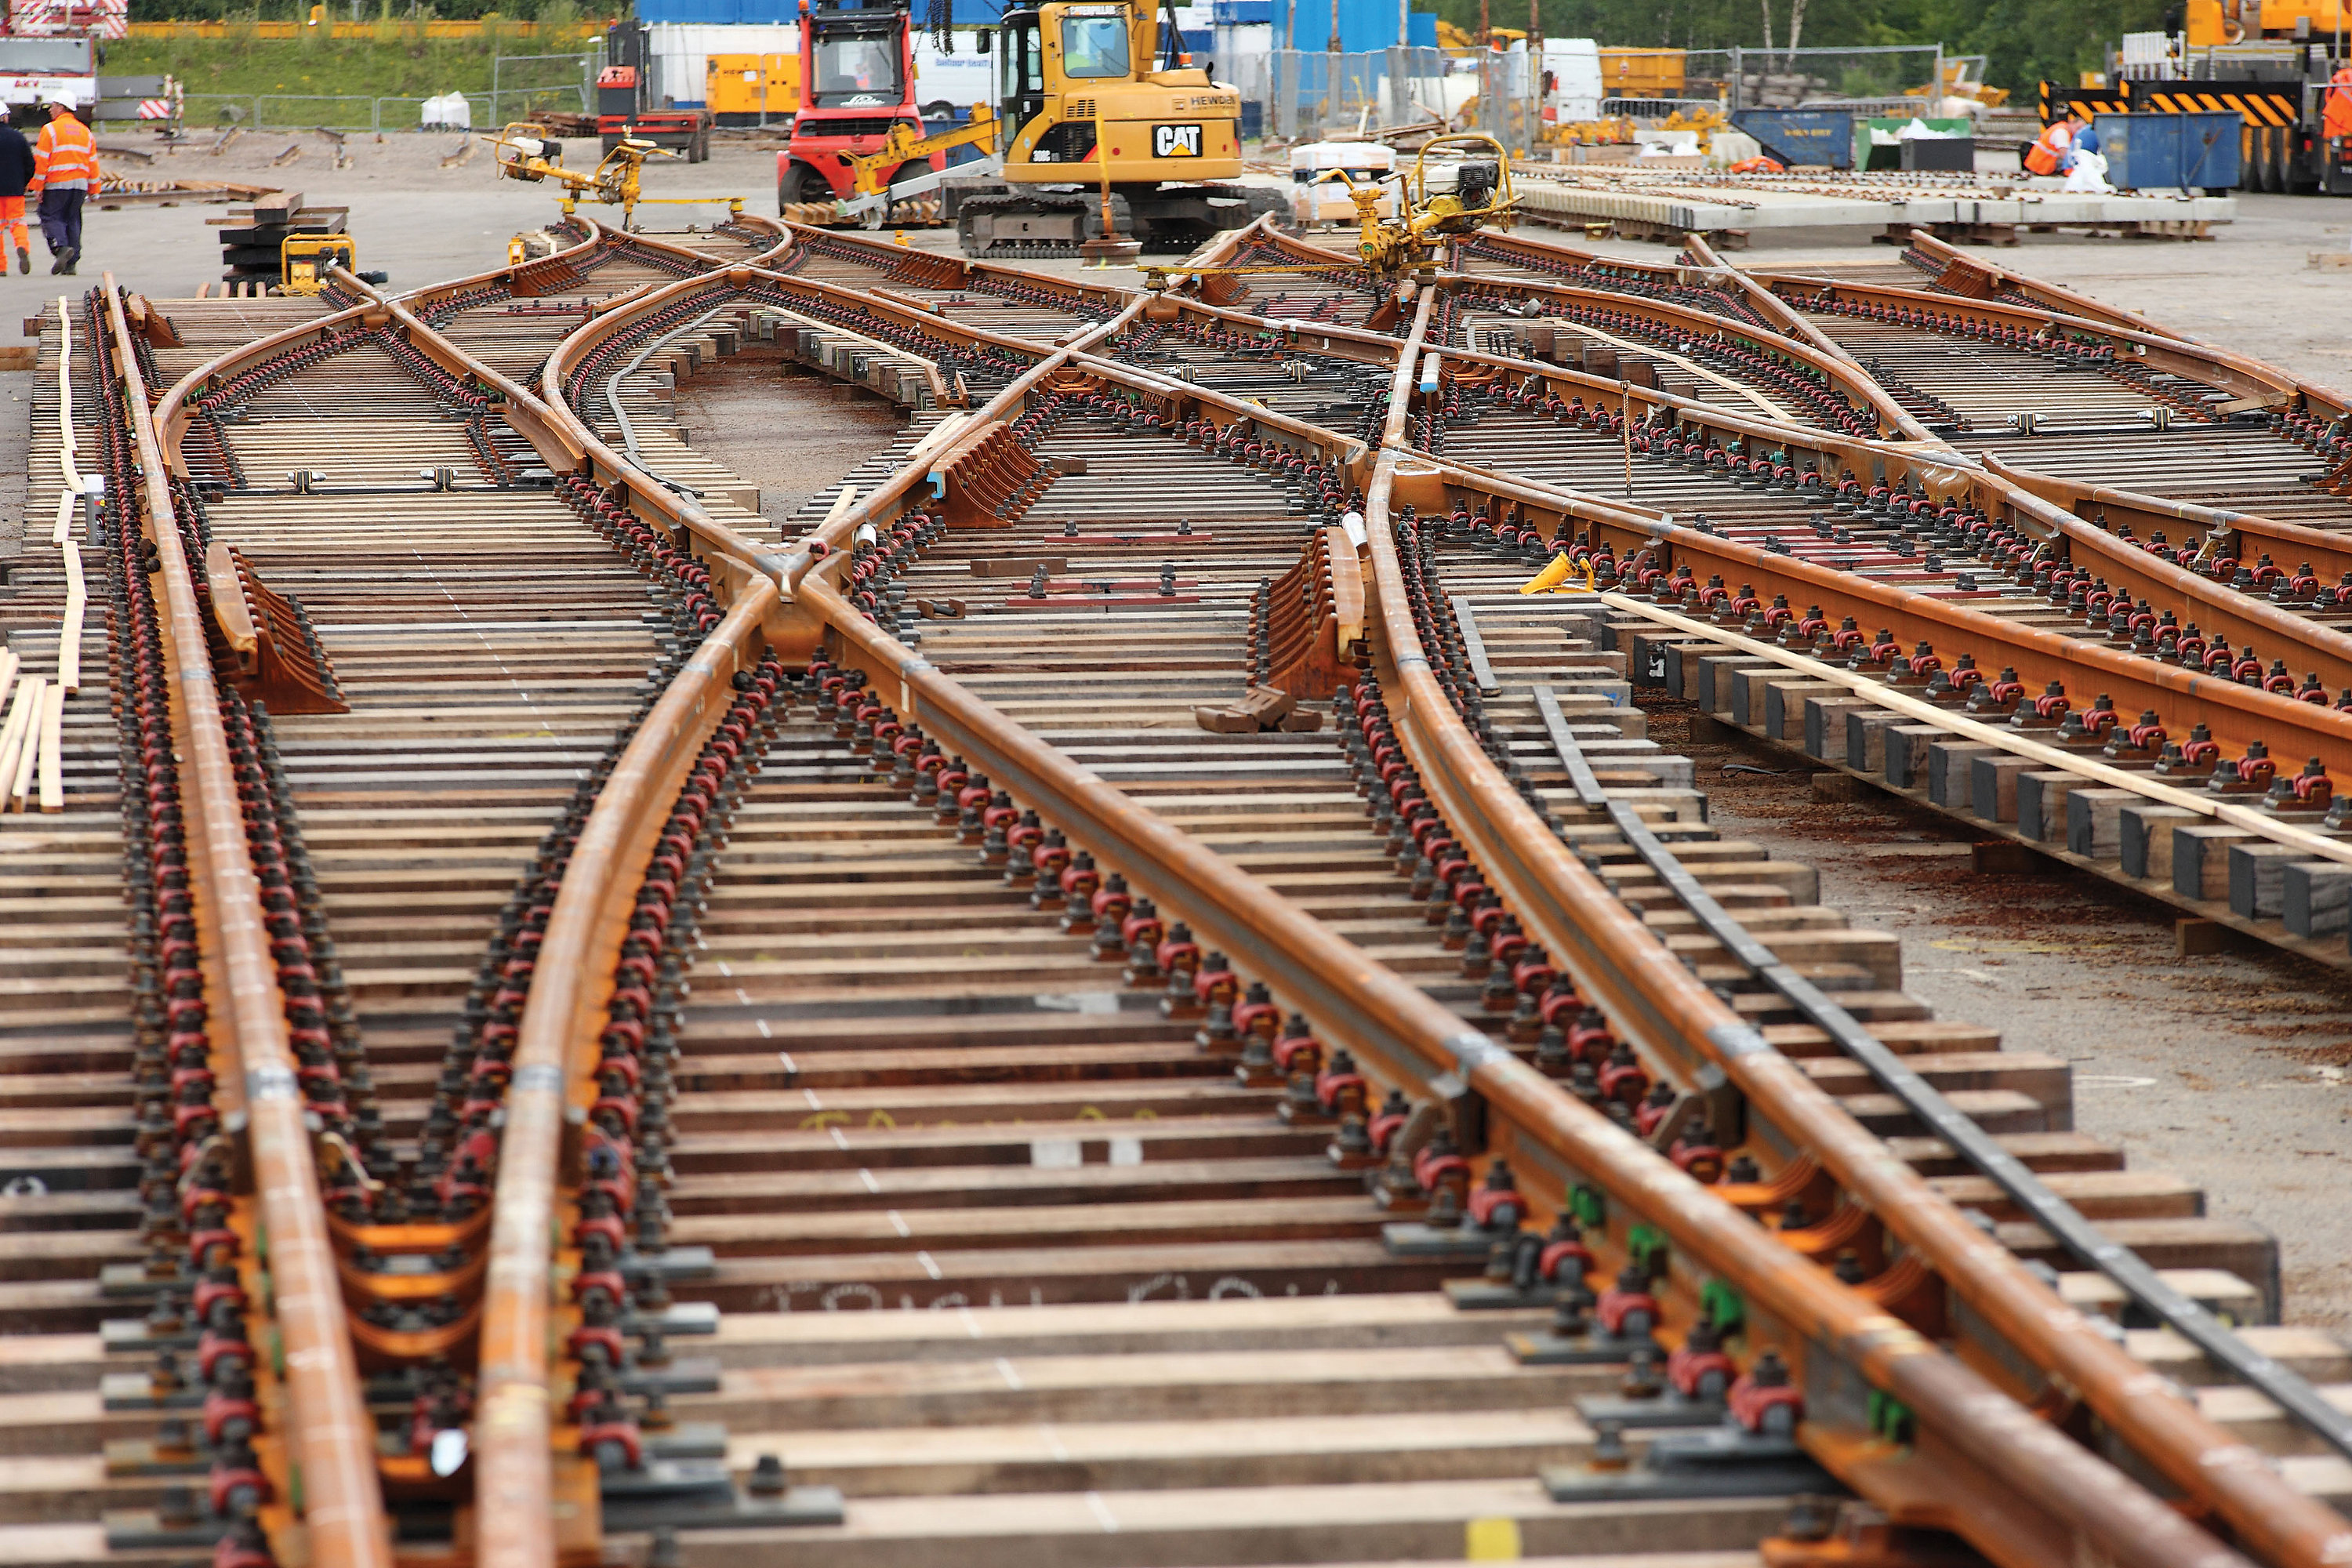 Progress Rail Services UK